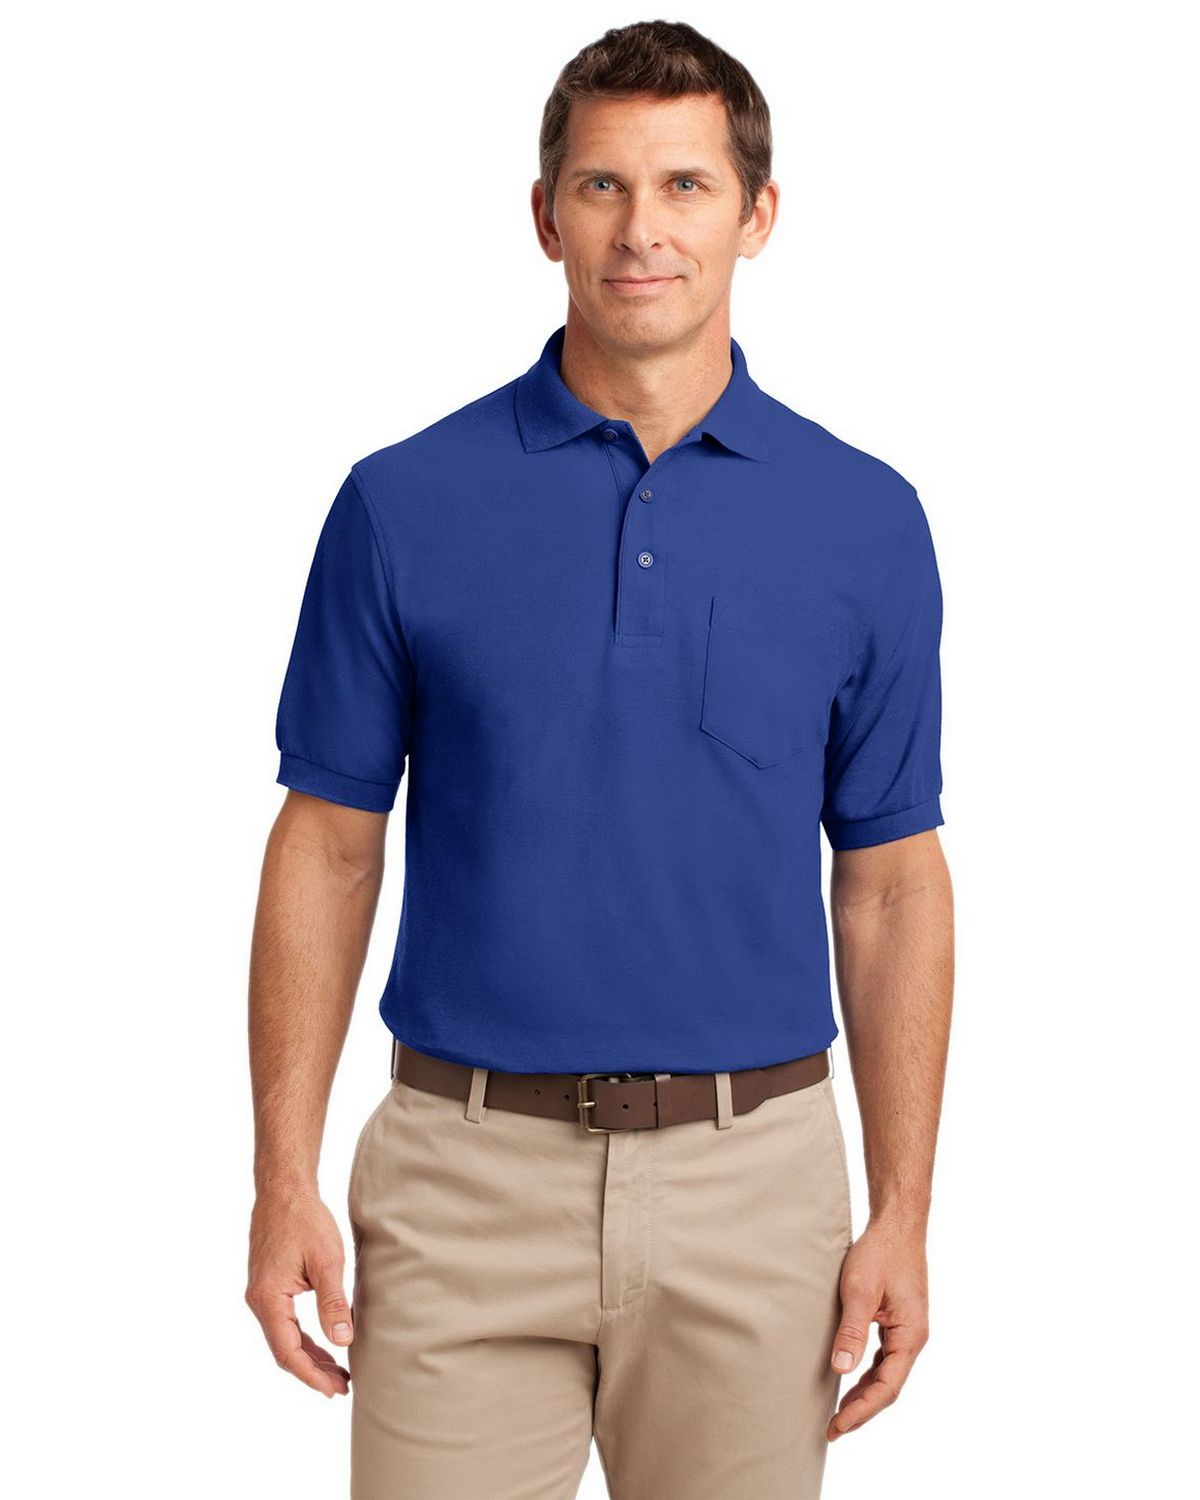 Port Authority K500P Men's Silk Touch Polo with Pocket - Royal - XS #silk